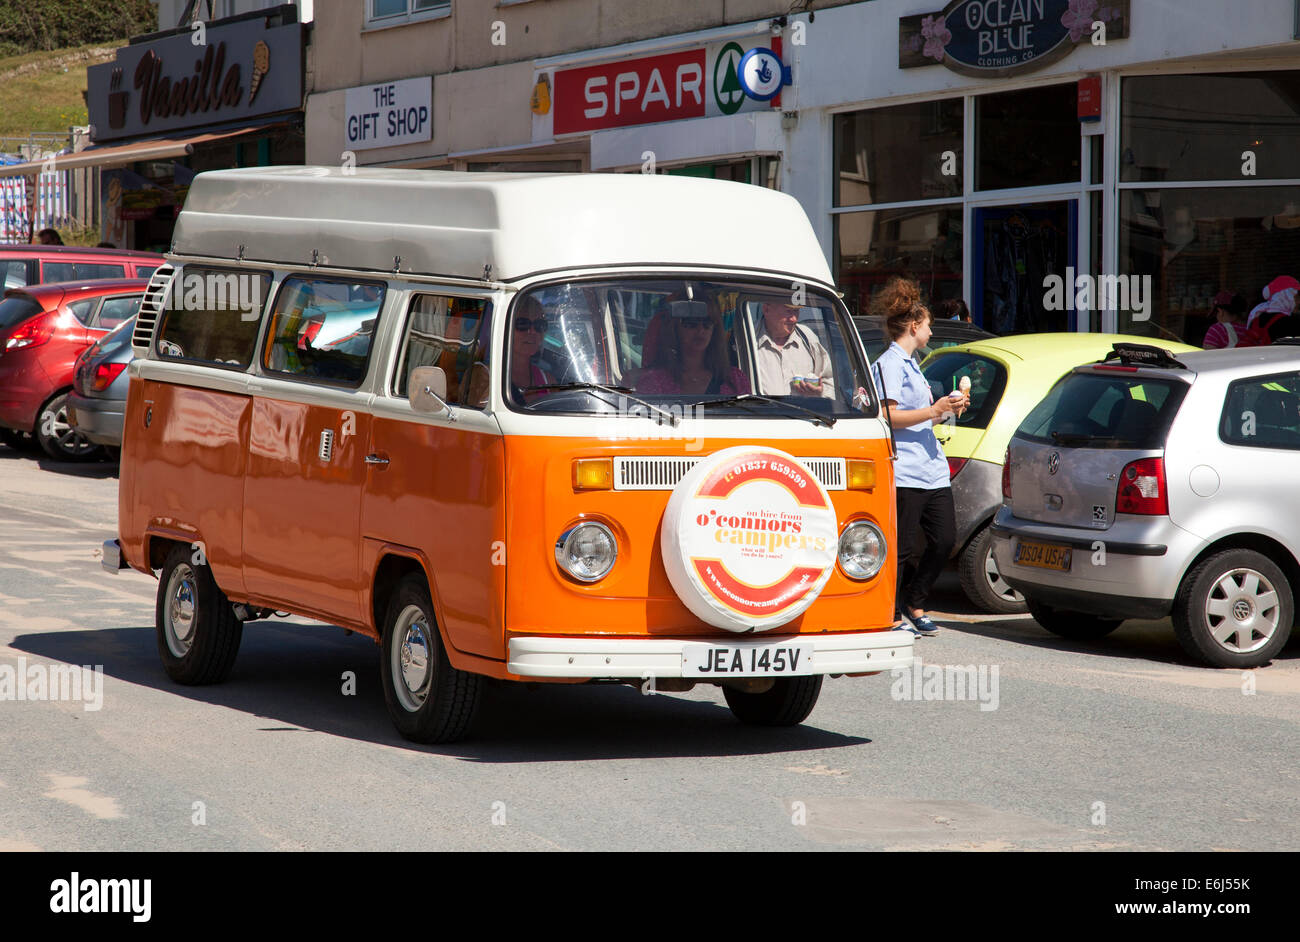 A classic VW campervan in Polzeath, Cornwall, England, U.K. - Stock Image